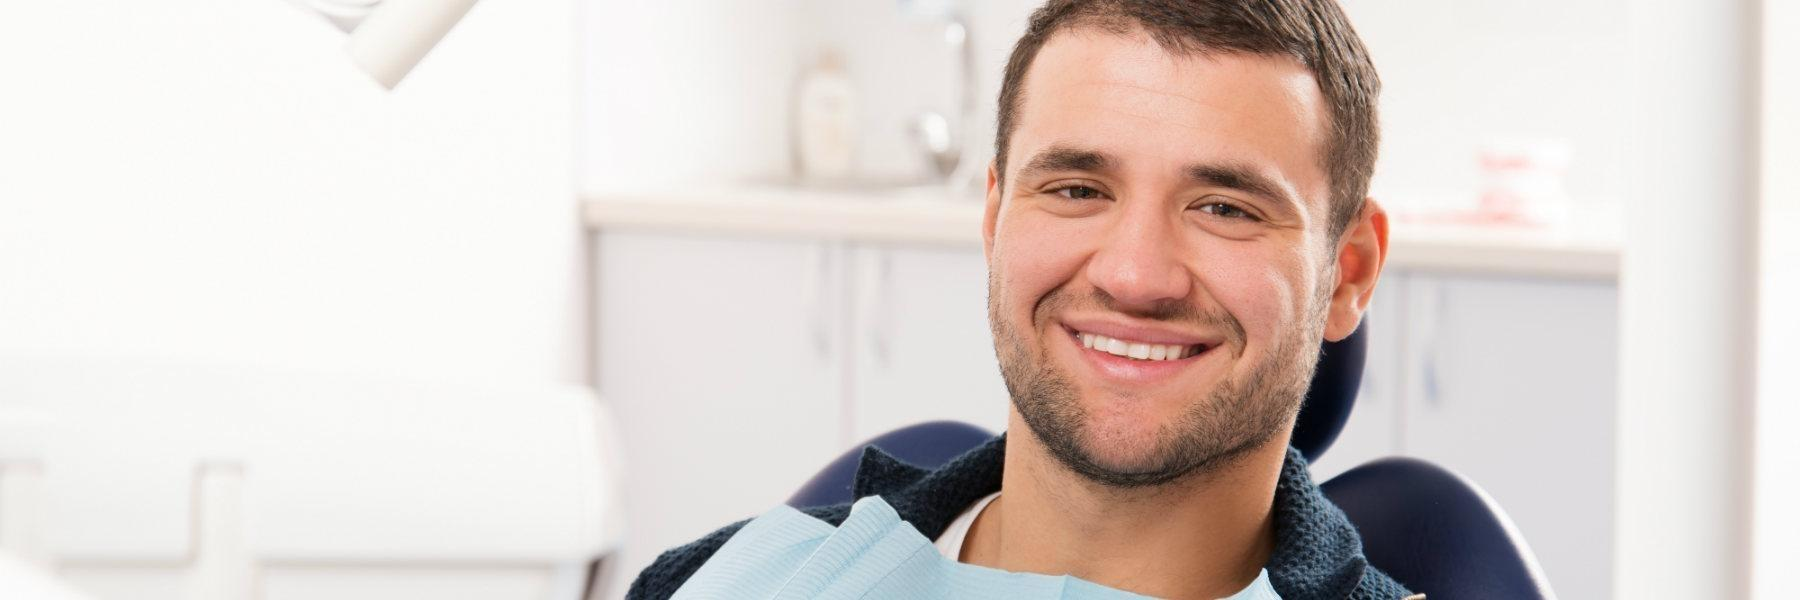 Cleanings & Exams | Dentist